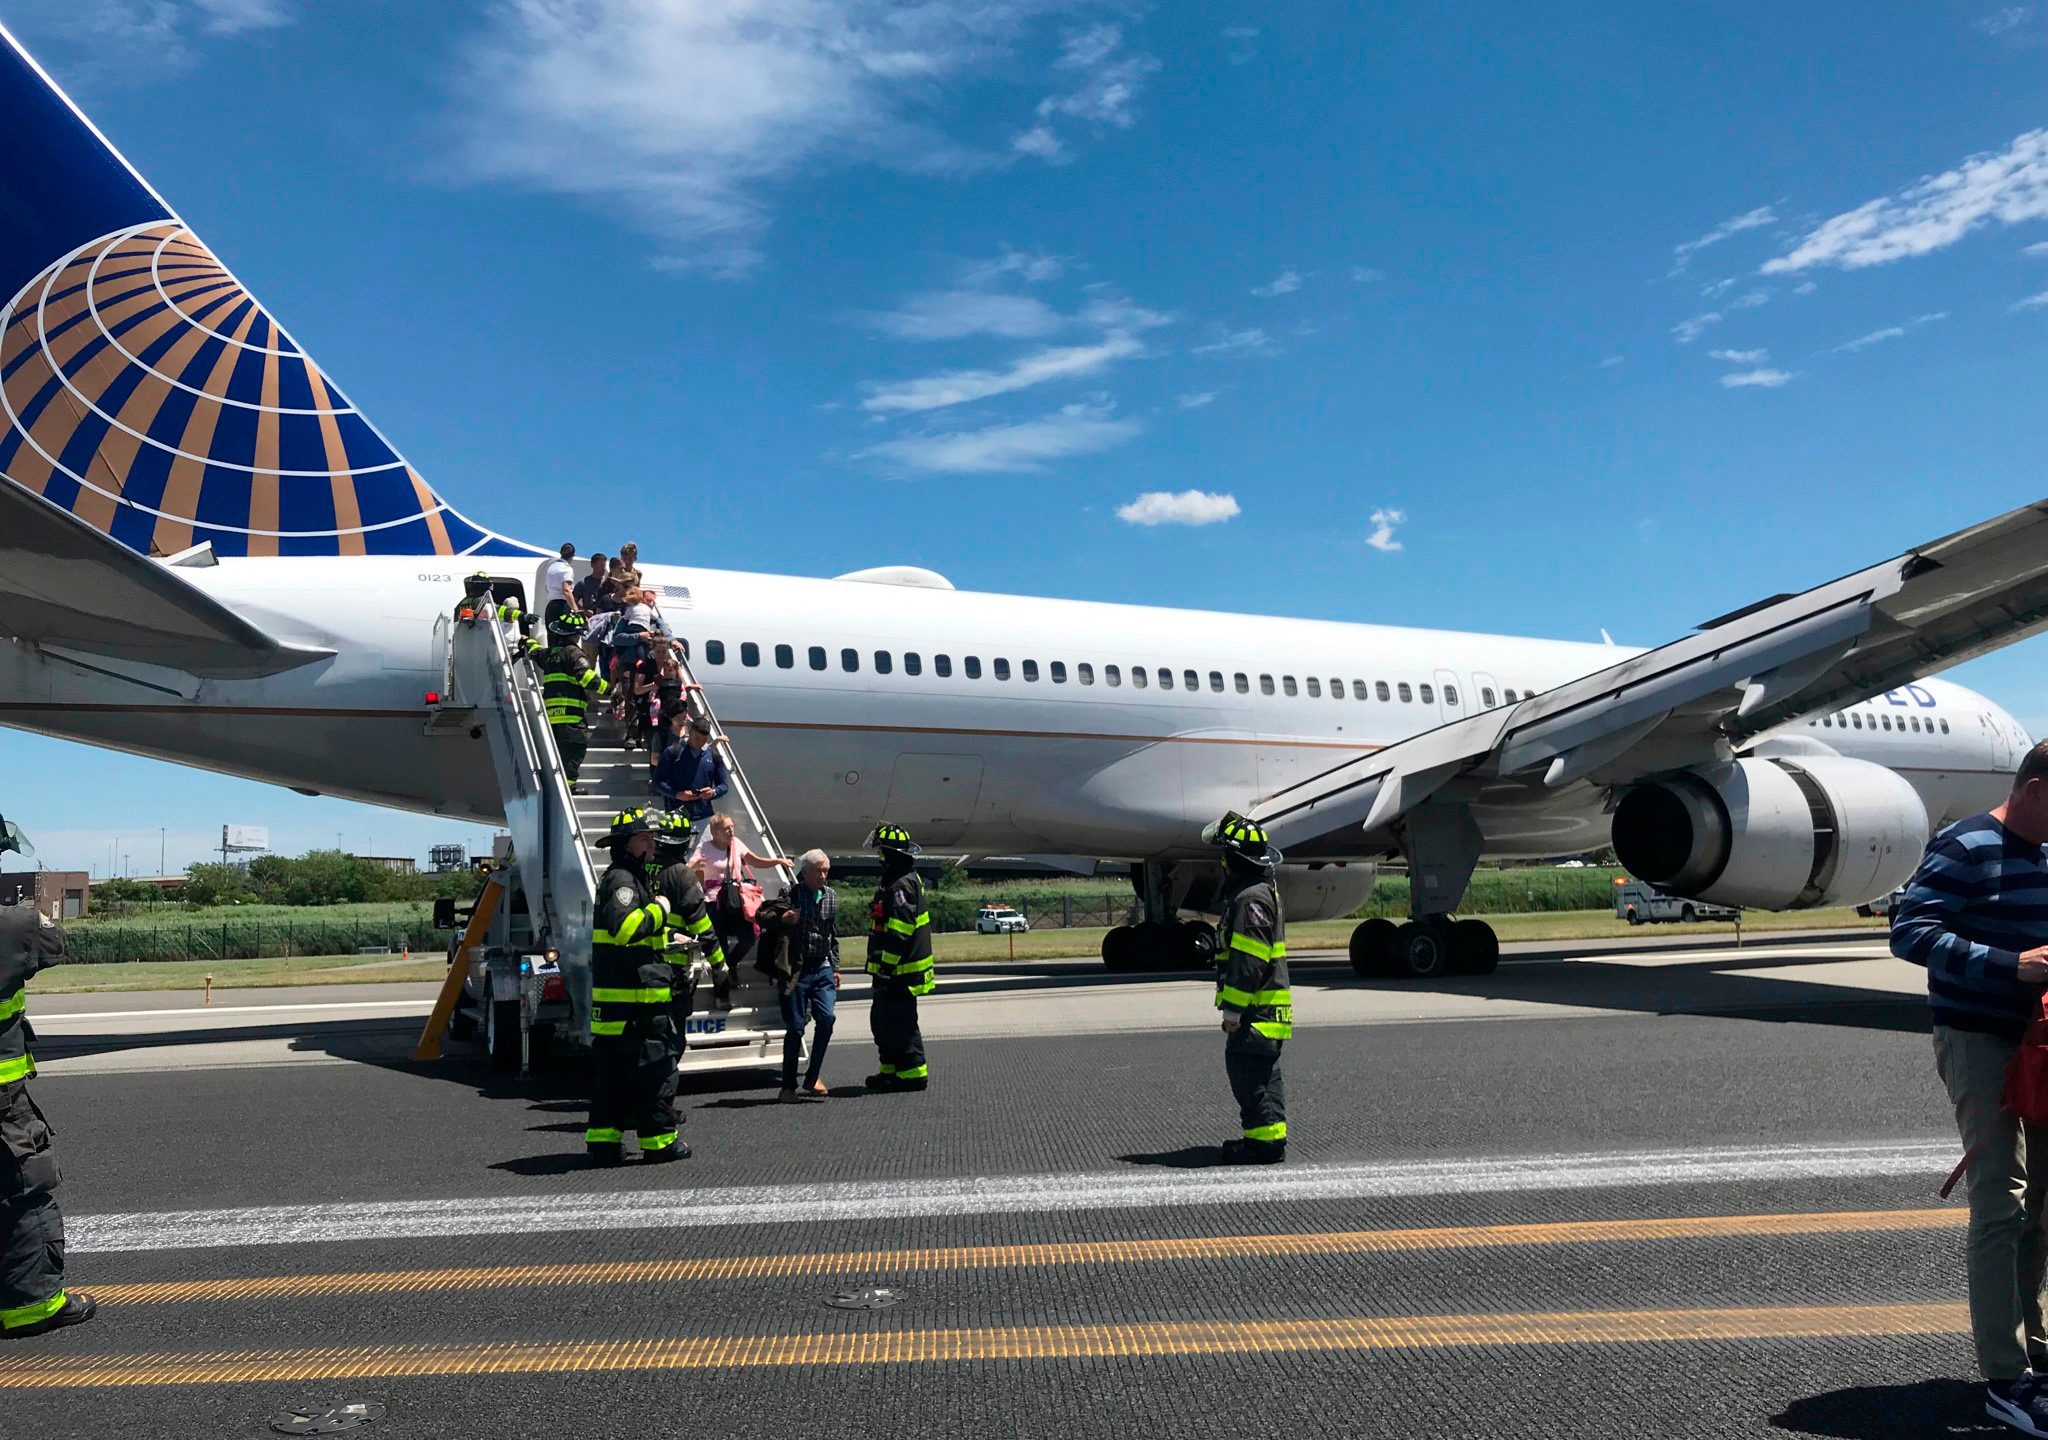 Emergency personnel help passengers off a plane after a United Airlines plane skidded off the runway after landing at Newark Liberty International Airport on Saturday, June 15, 2019 in Newark, N.J.